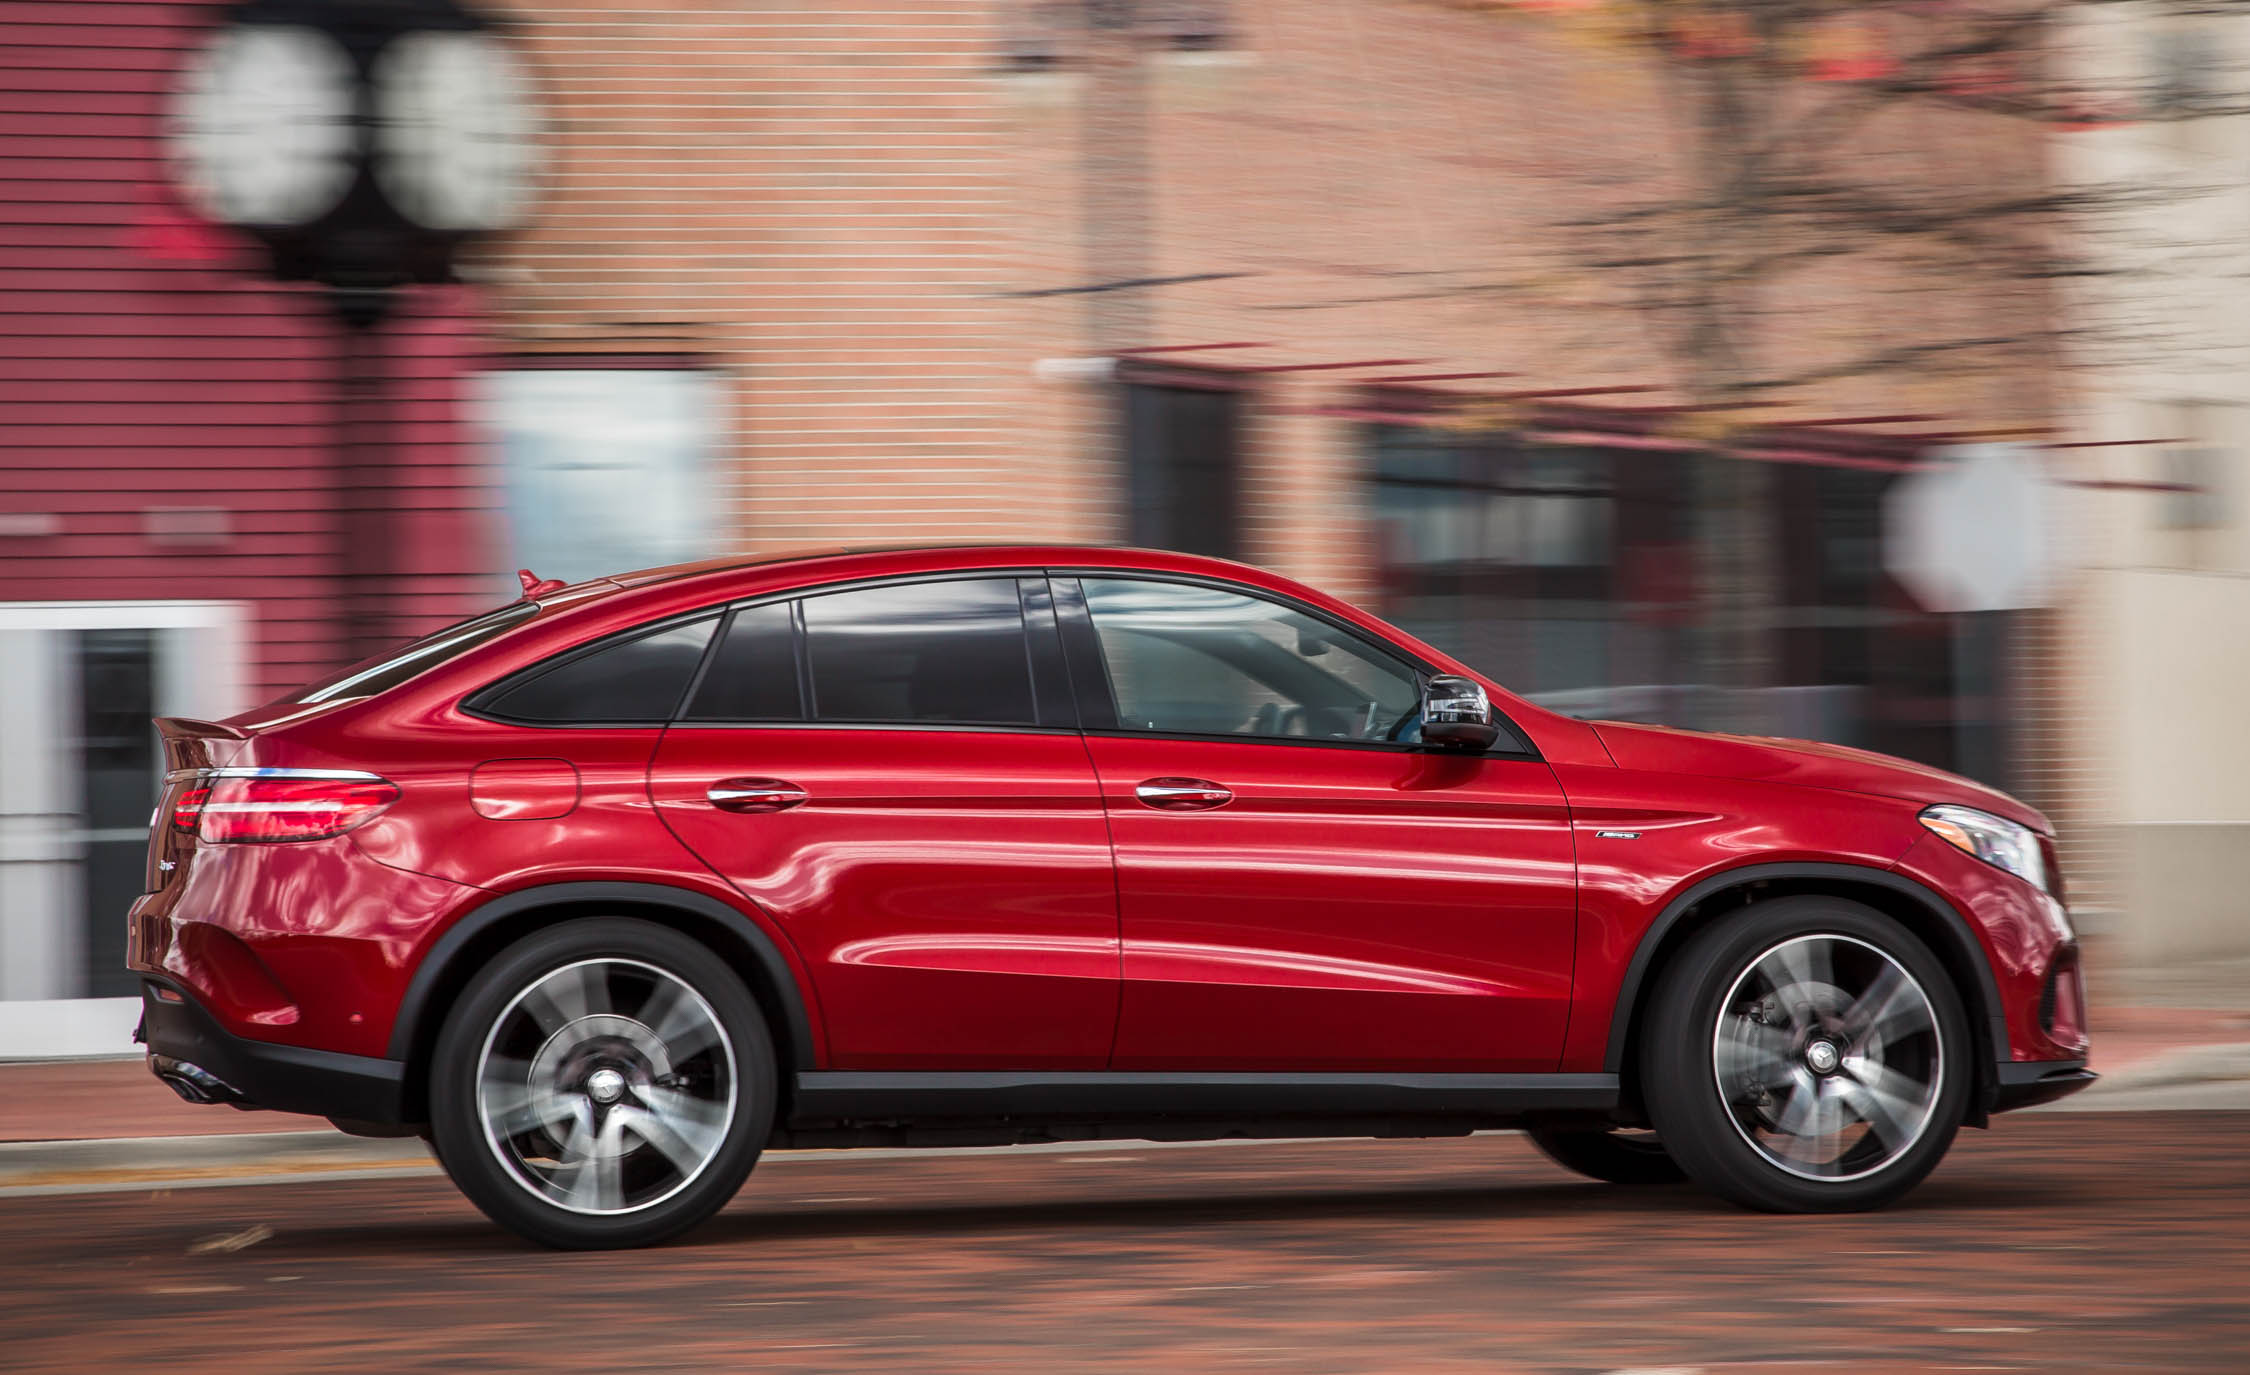 2016 Mercedes Benz GLE450 AMG Coupe (Photo 27 of 43)